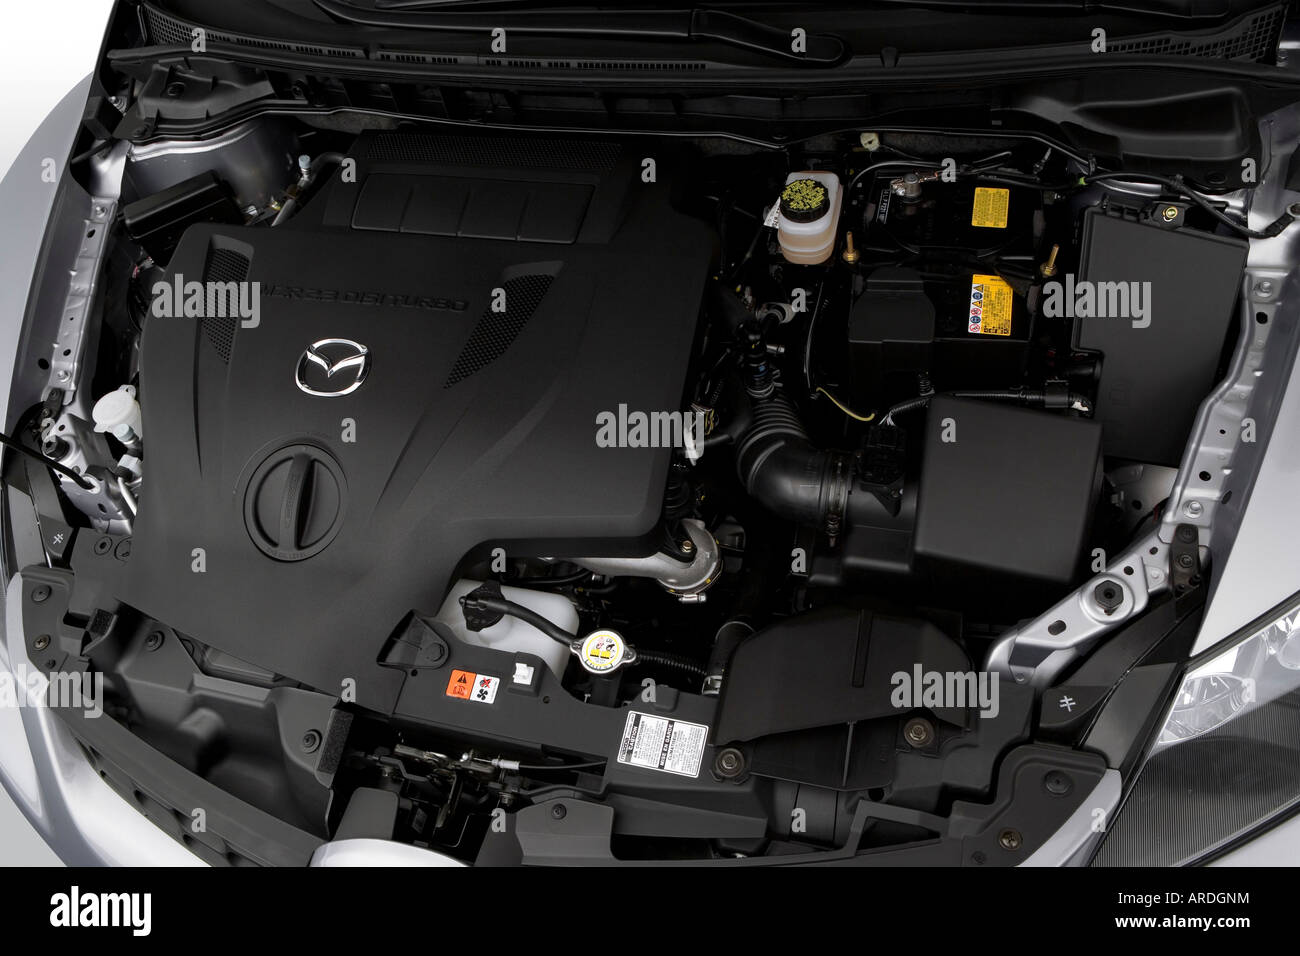 2007 mazda cx 7 grand touring in gray engine stock photo. Black Bedroom Furniture Sets. Home Design Ideas